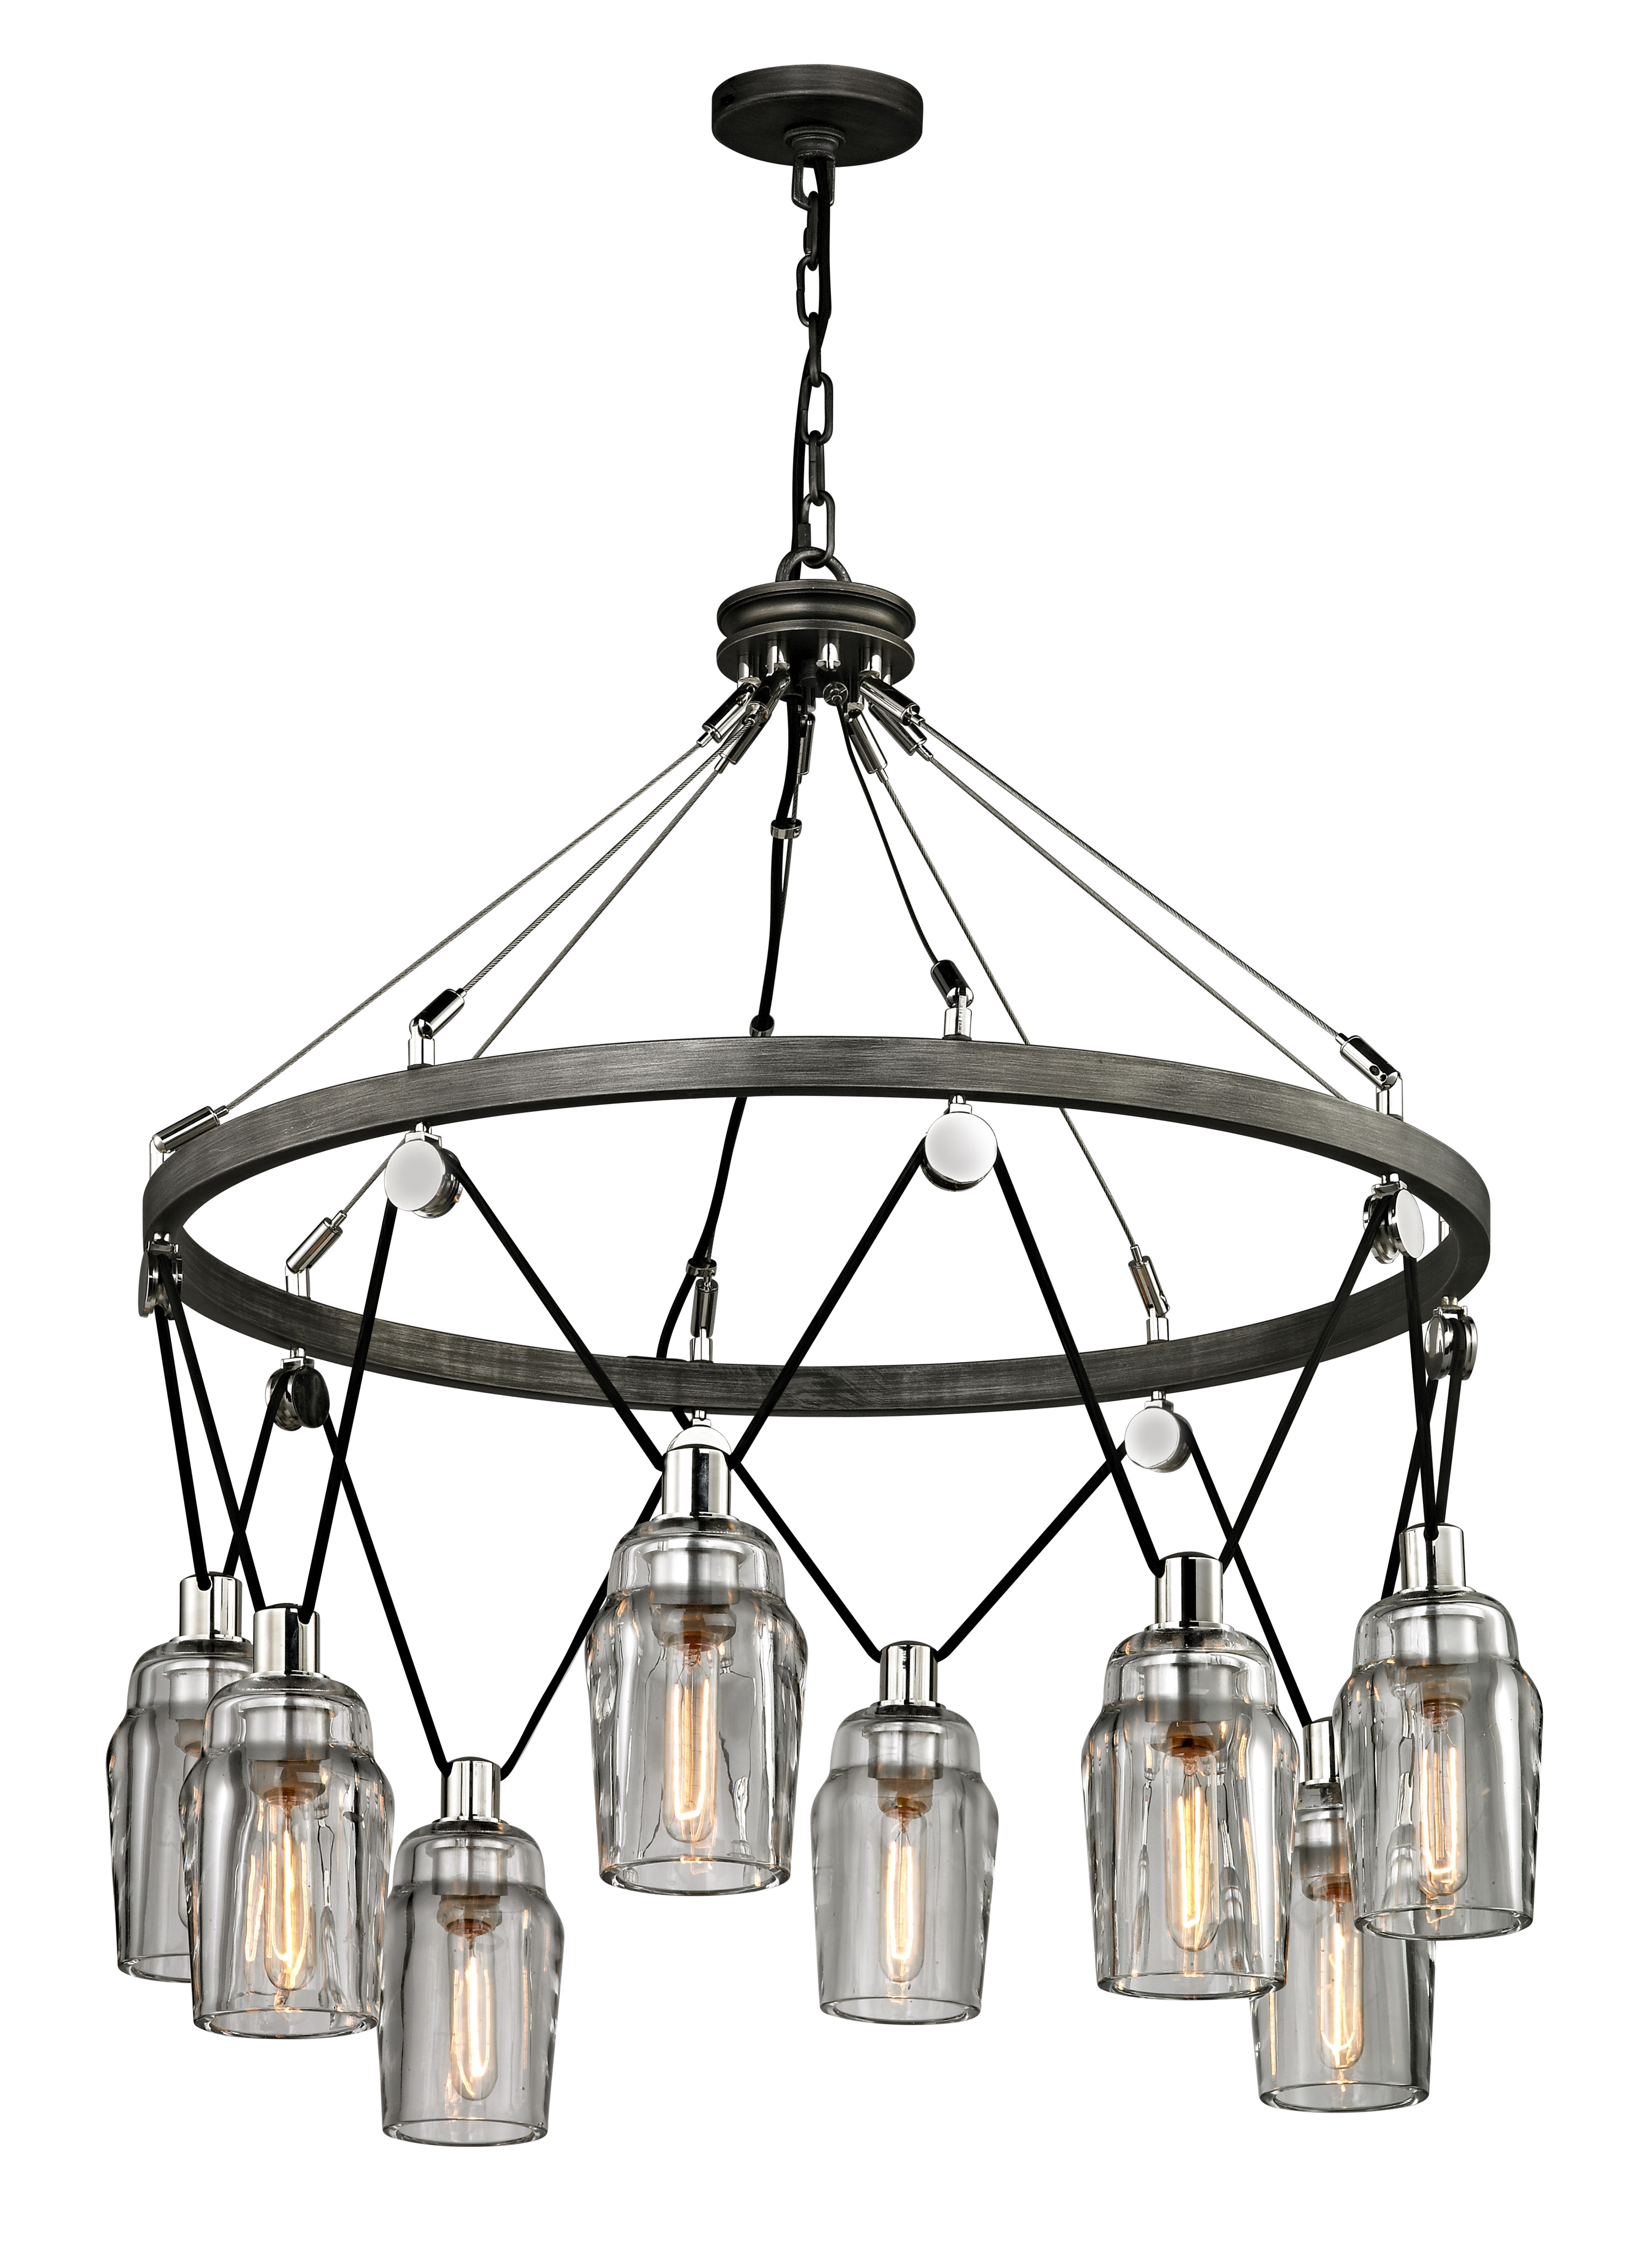 troy lighting presents new collections that epitomize